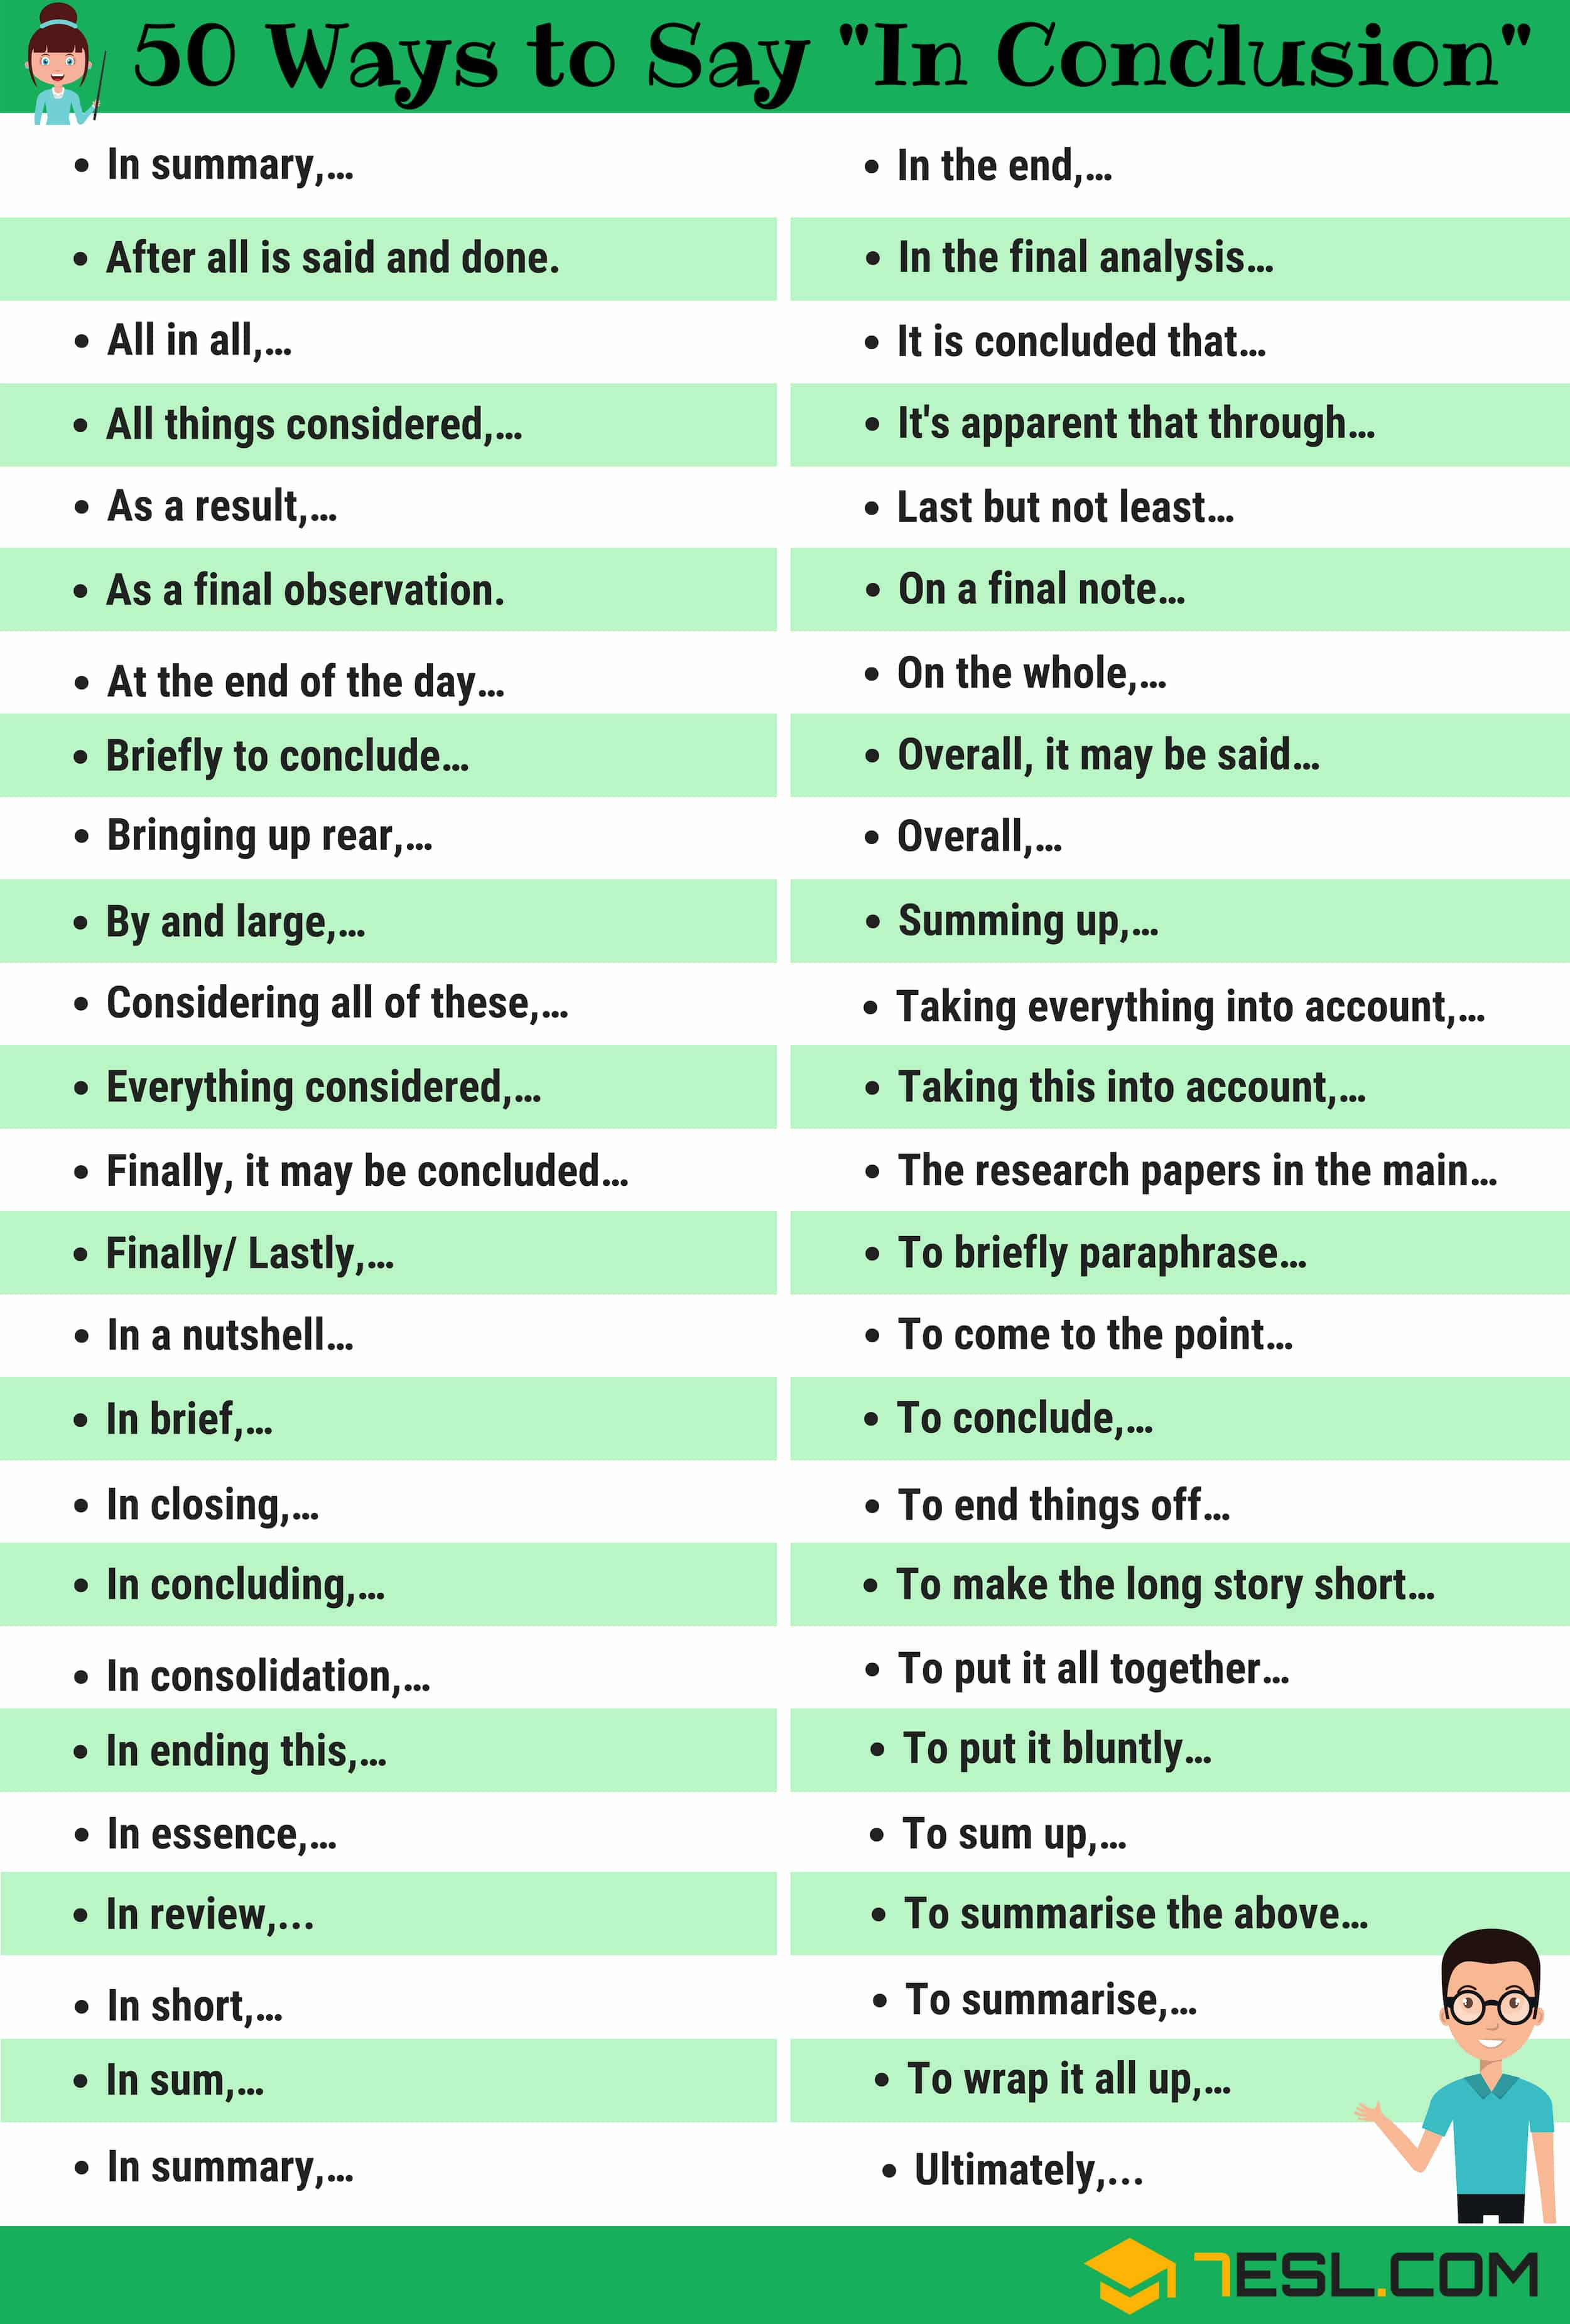 In Conclusion Synonym 50 Other Ways to Say IN CONCLUSION